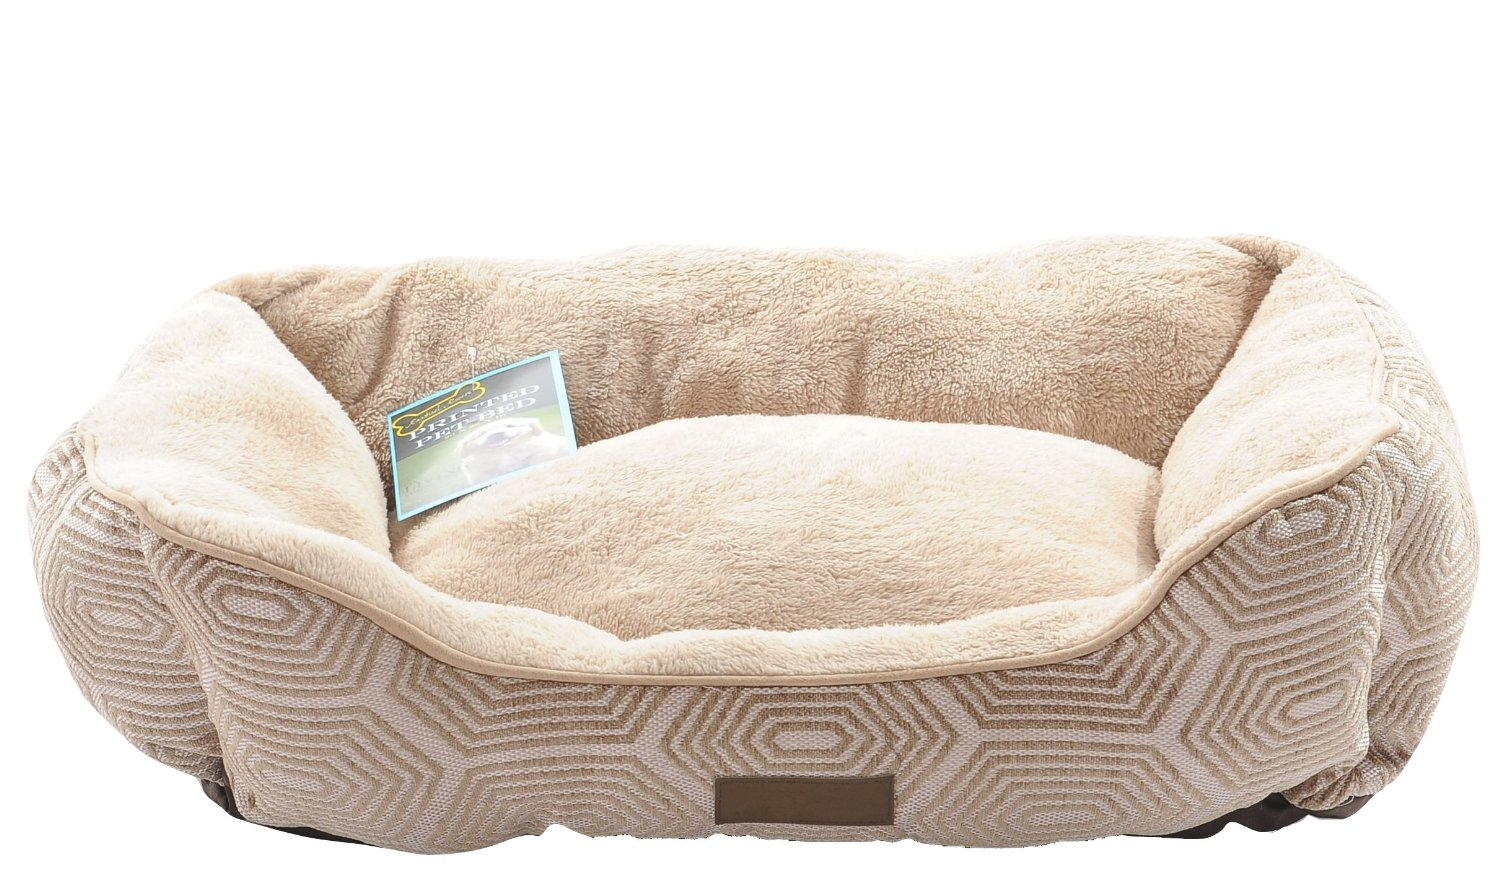 Not just another southern gal comfy pooch plush soft pet bed review Comfy couch dog bed